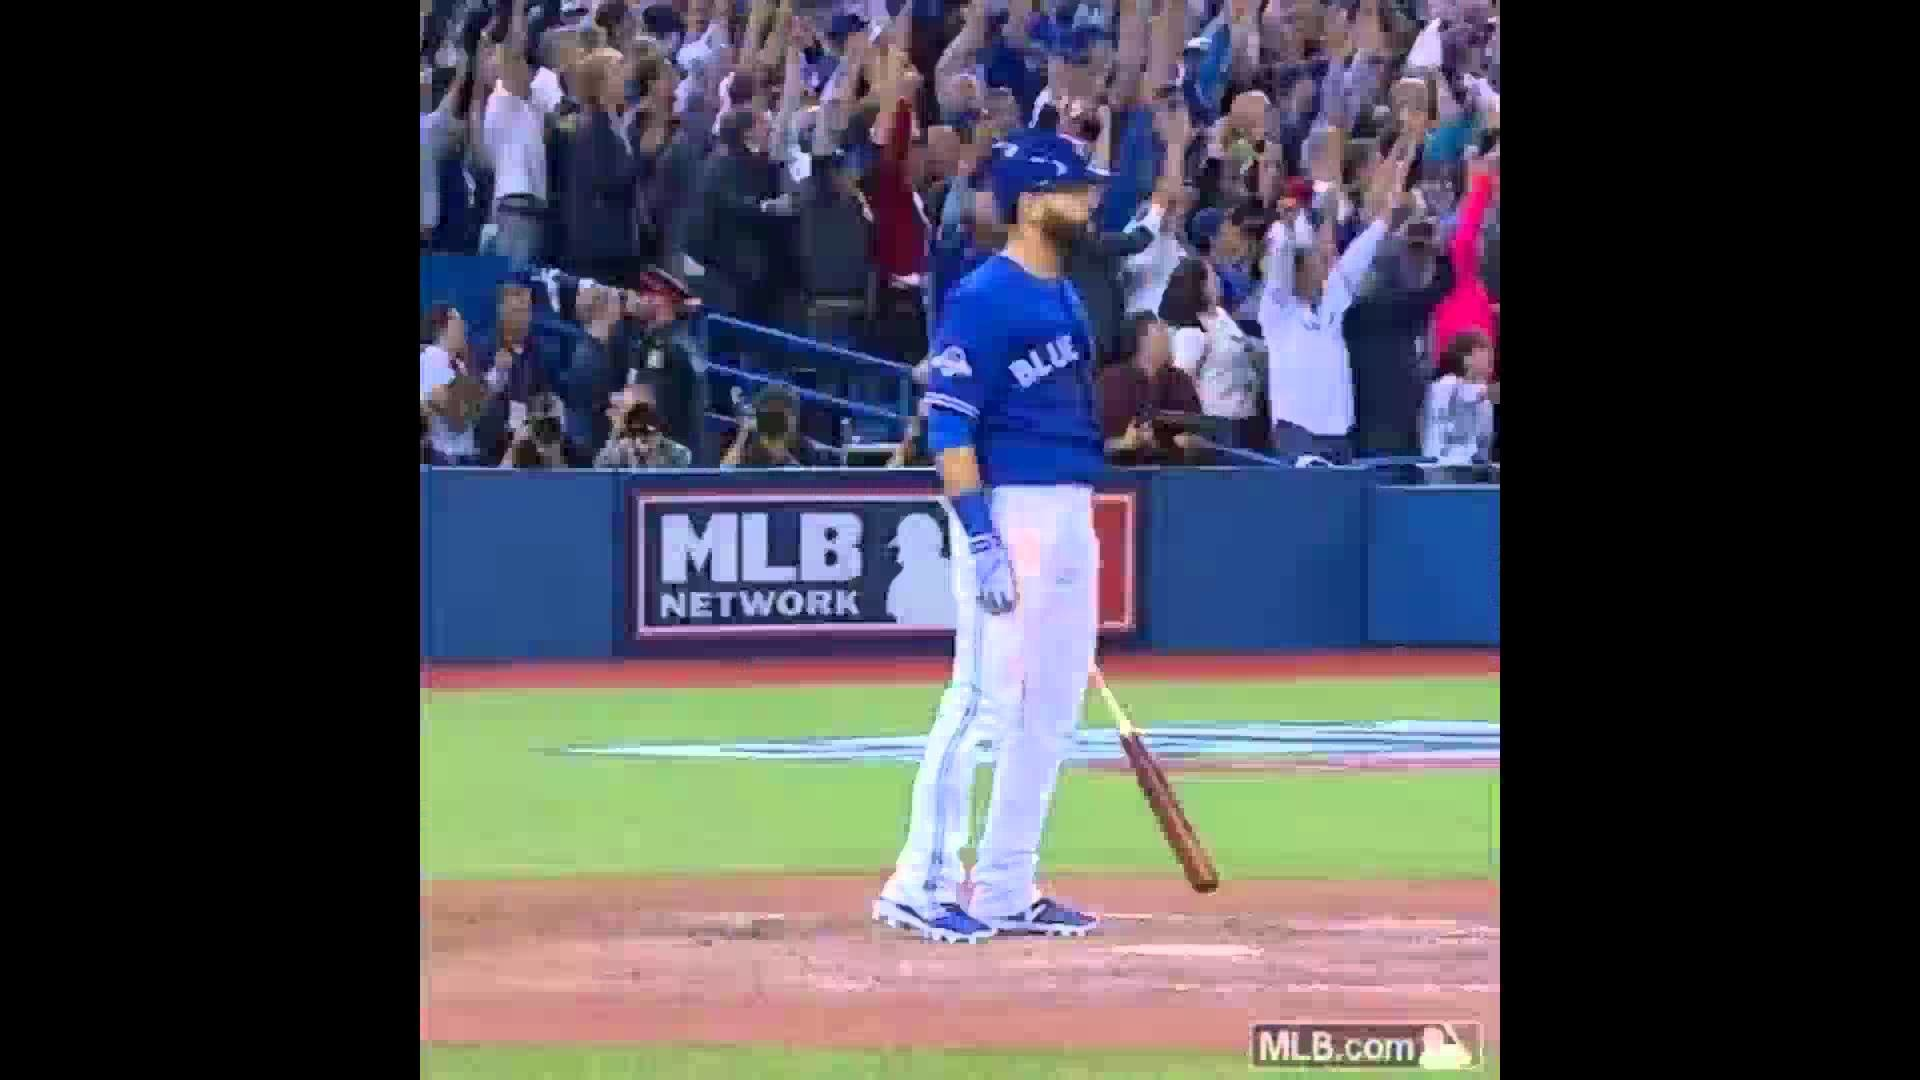 1920x1080 José Bautista Looka Da Flicka Da Wrist Bat Flip Game 5 Blue Jays Rangers  MLB Toronto Texas - YouTube